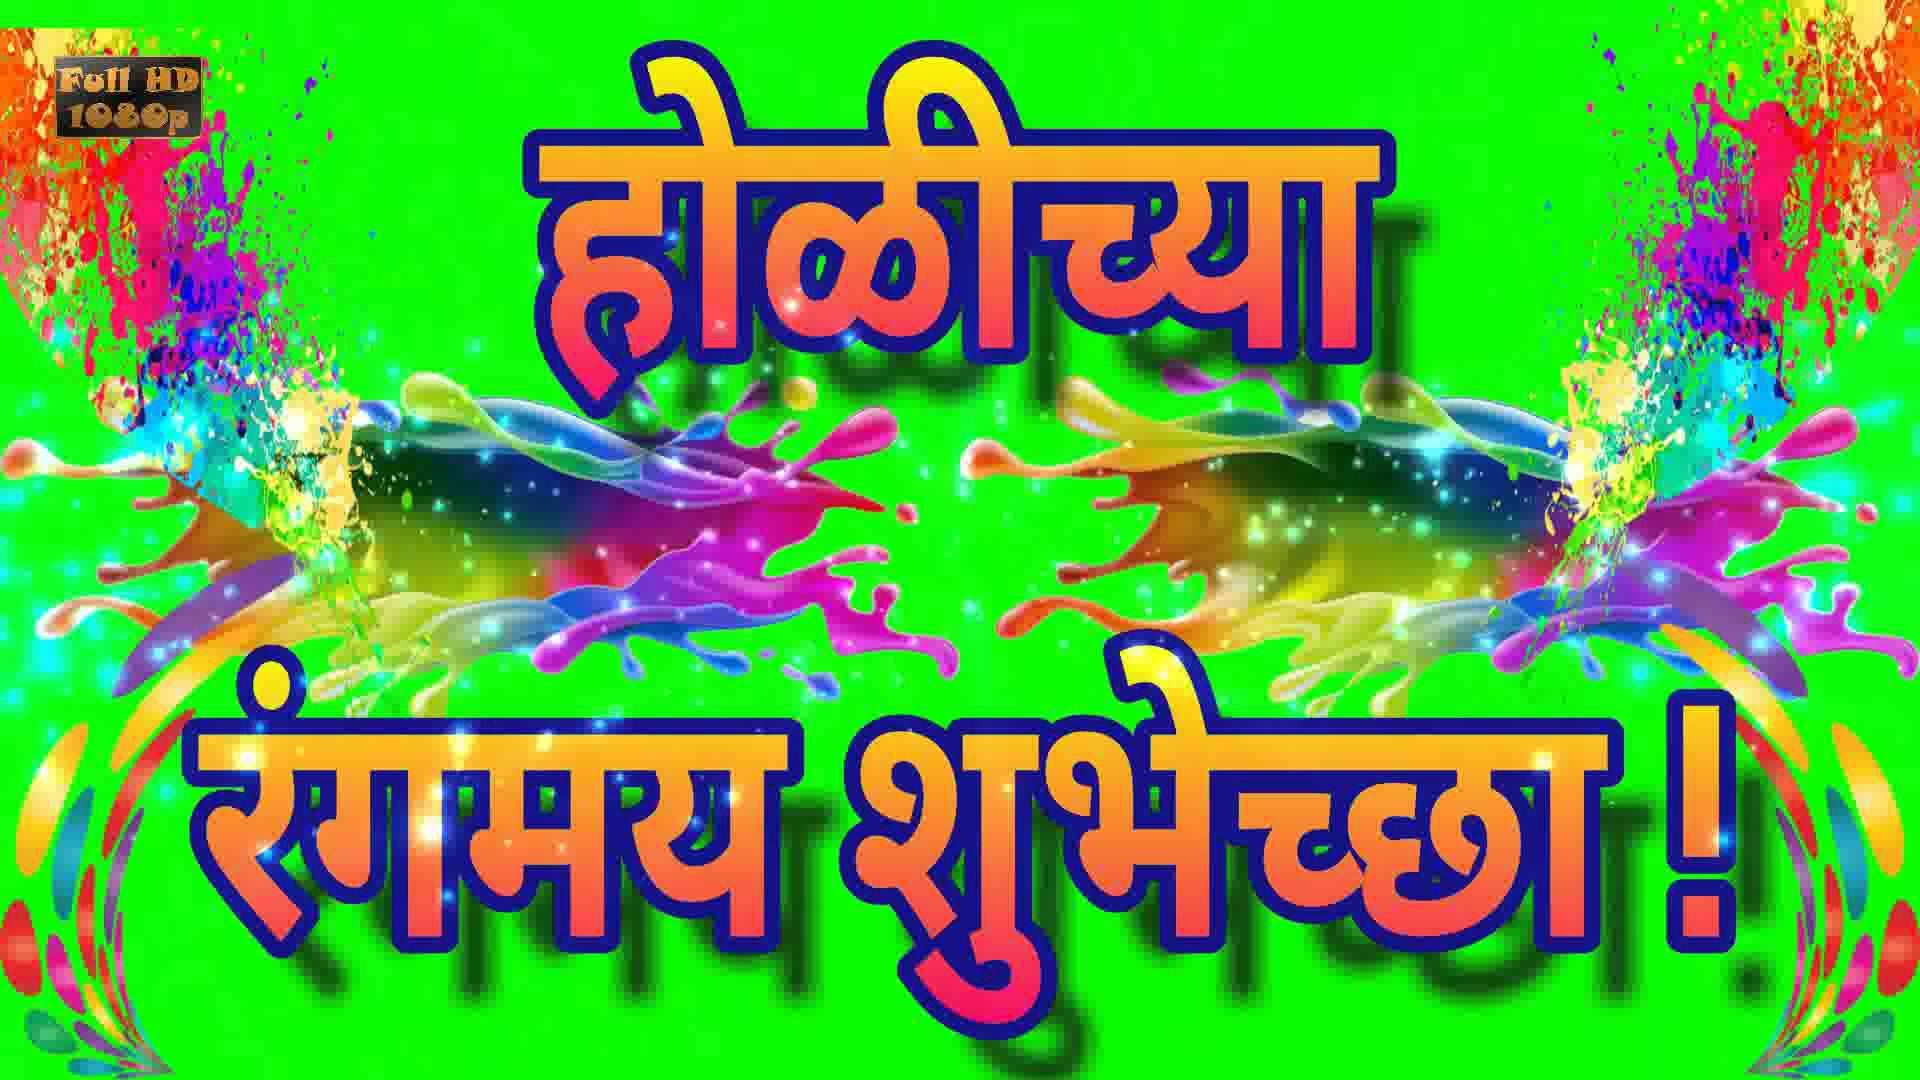 Happy Holi Greetings In Marathi Holi Whatsapp Video Holi Wishes In